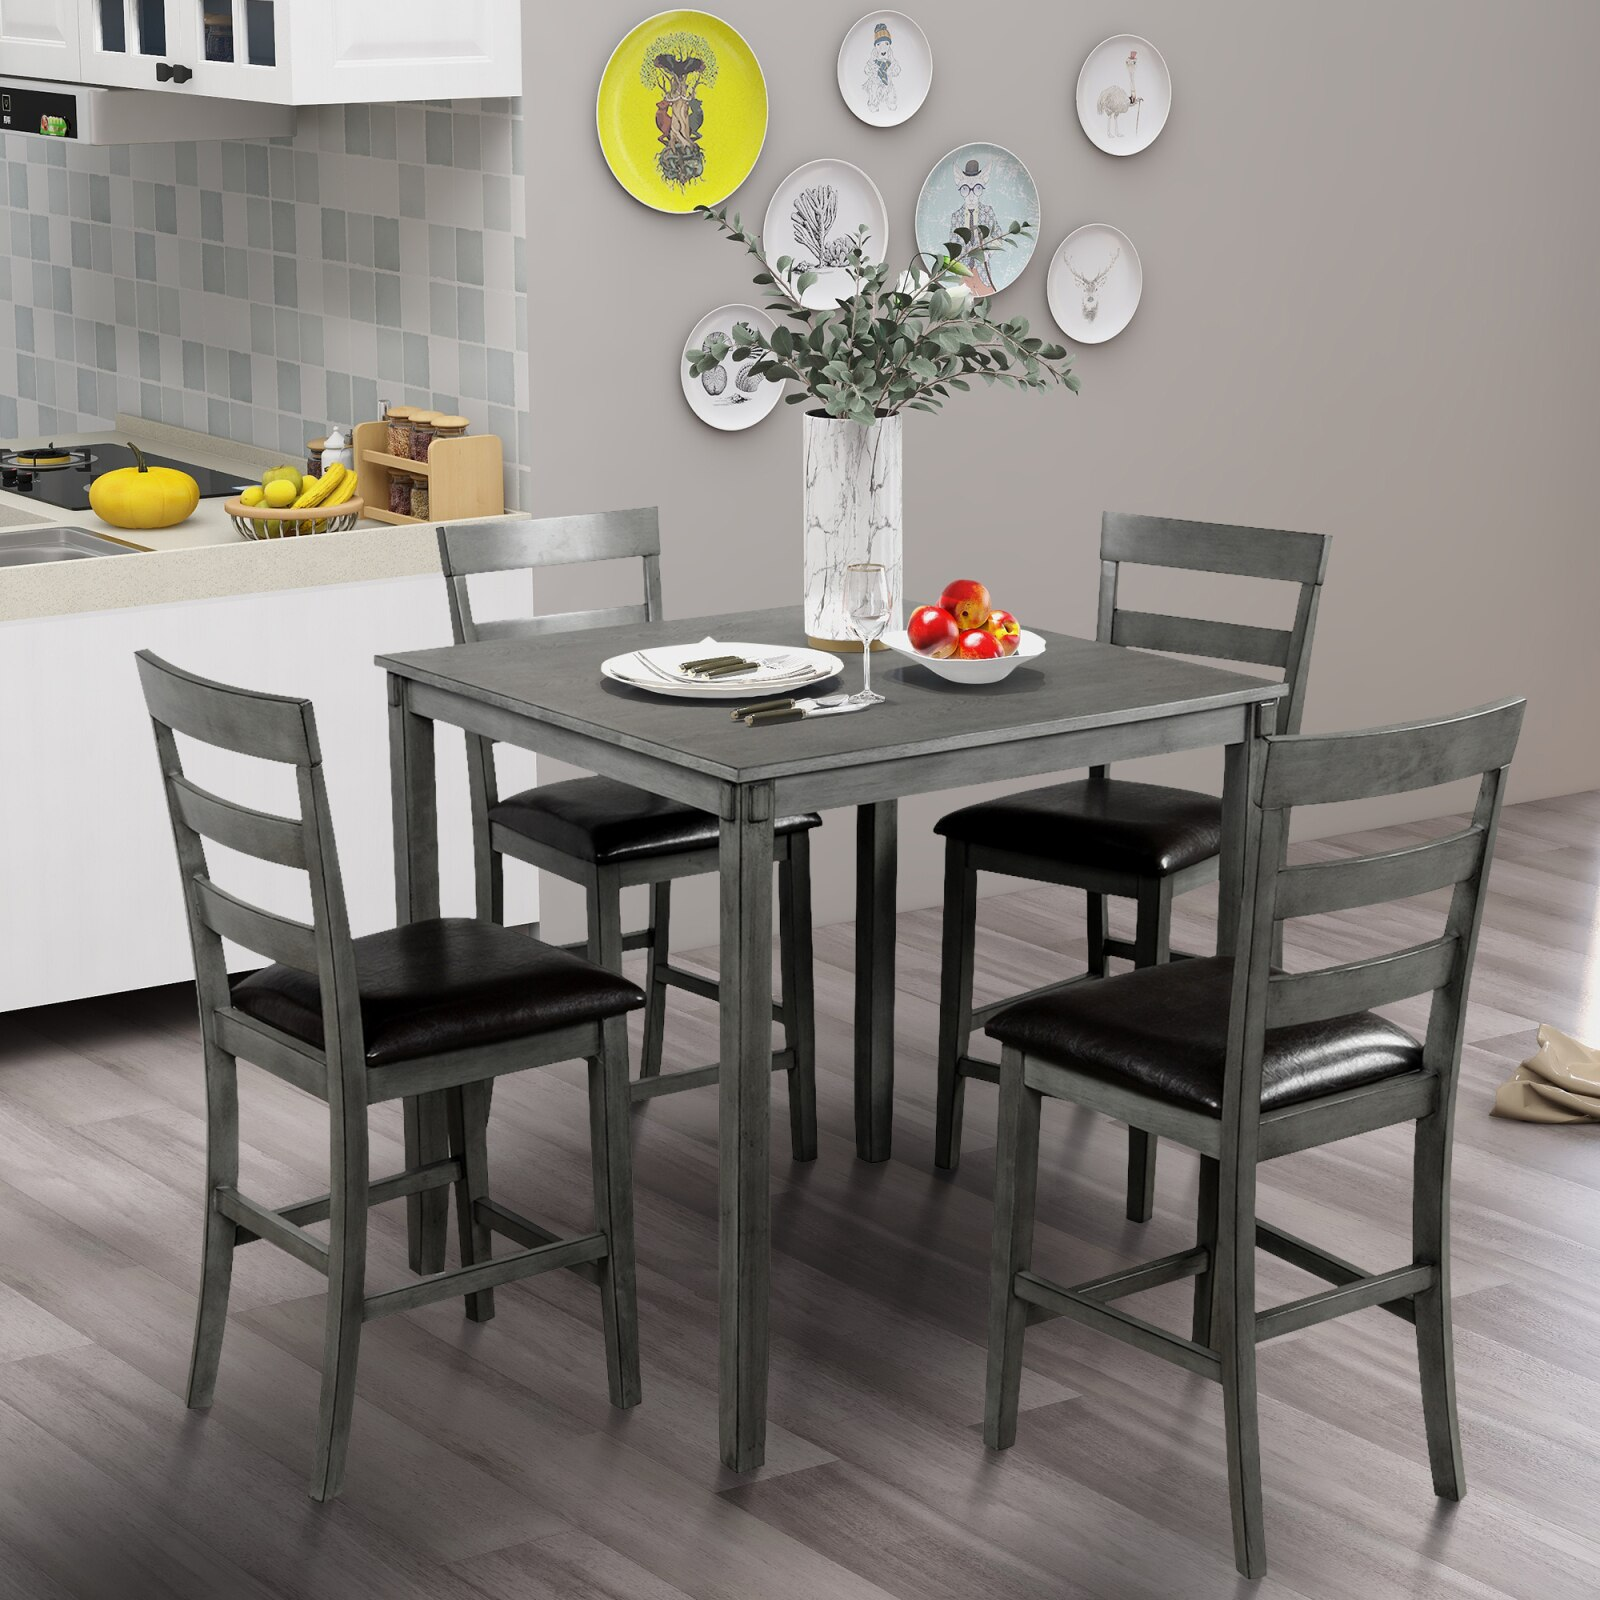 Square Counter Height Wooden Kitchen Dining Set, Dining Room Set With Table And 4 Chairs (Grey) 1